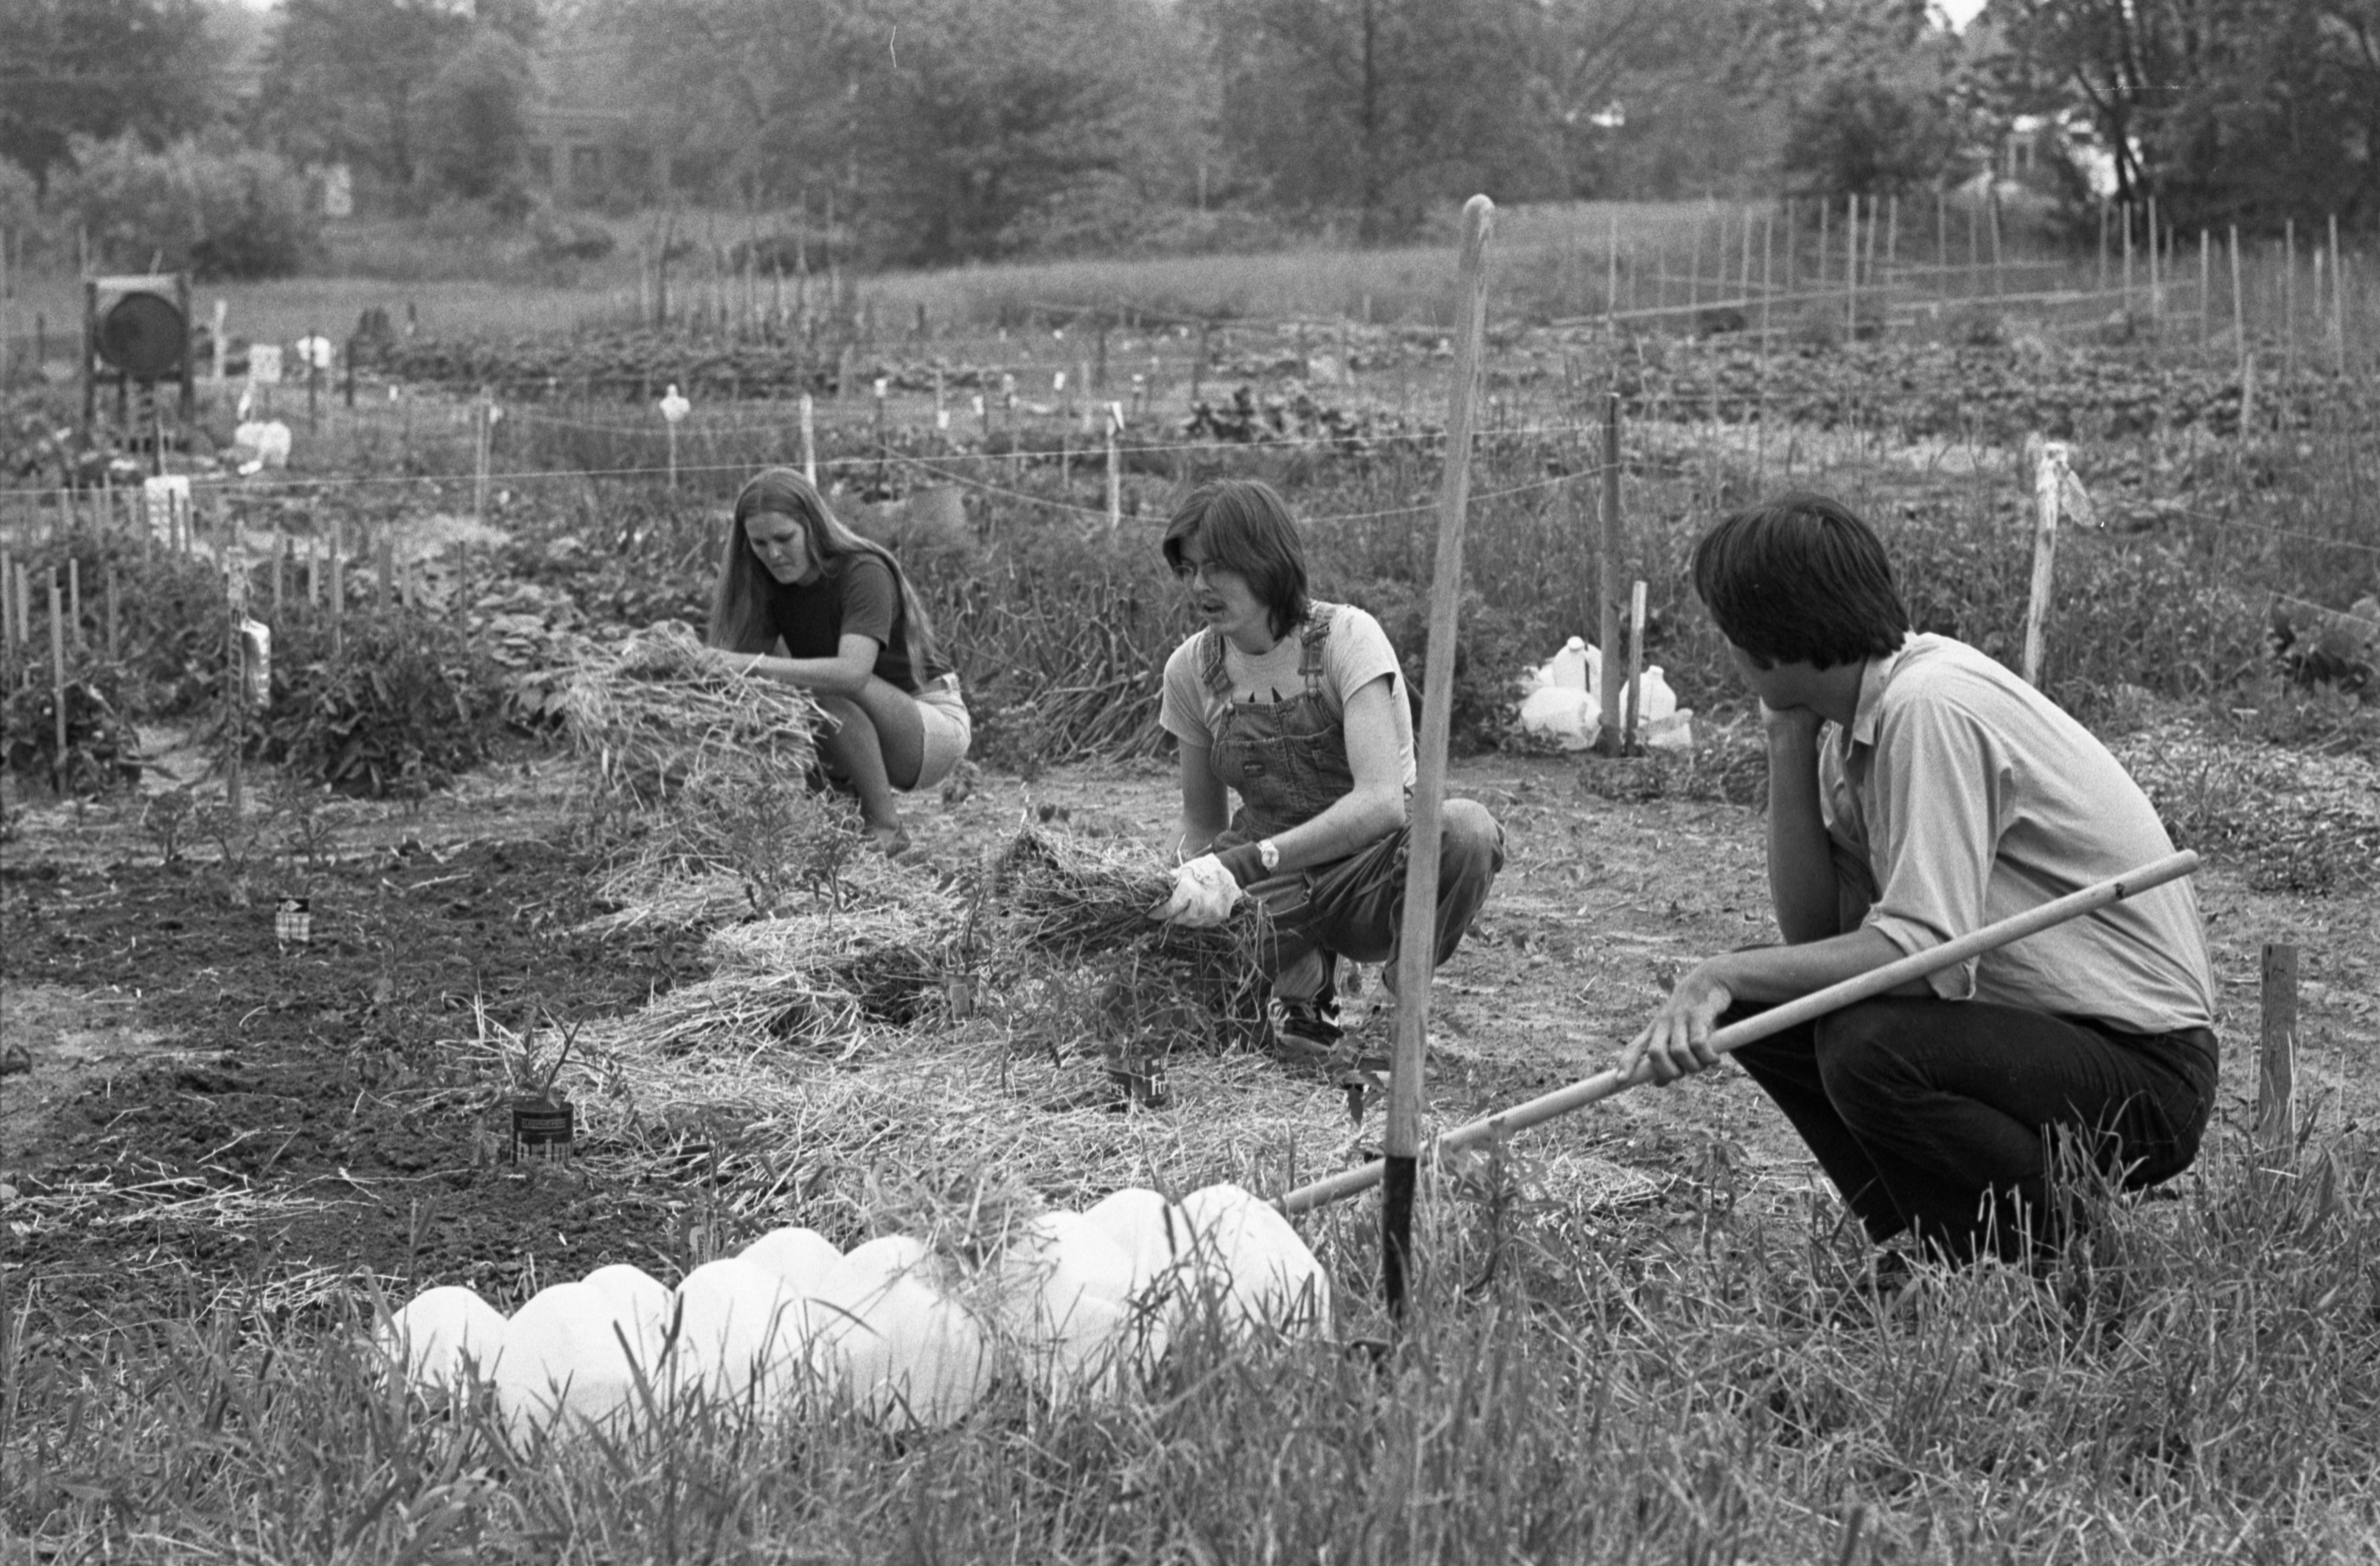 Working At The Community Farm, June 1977 image